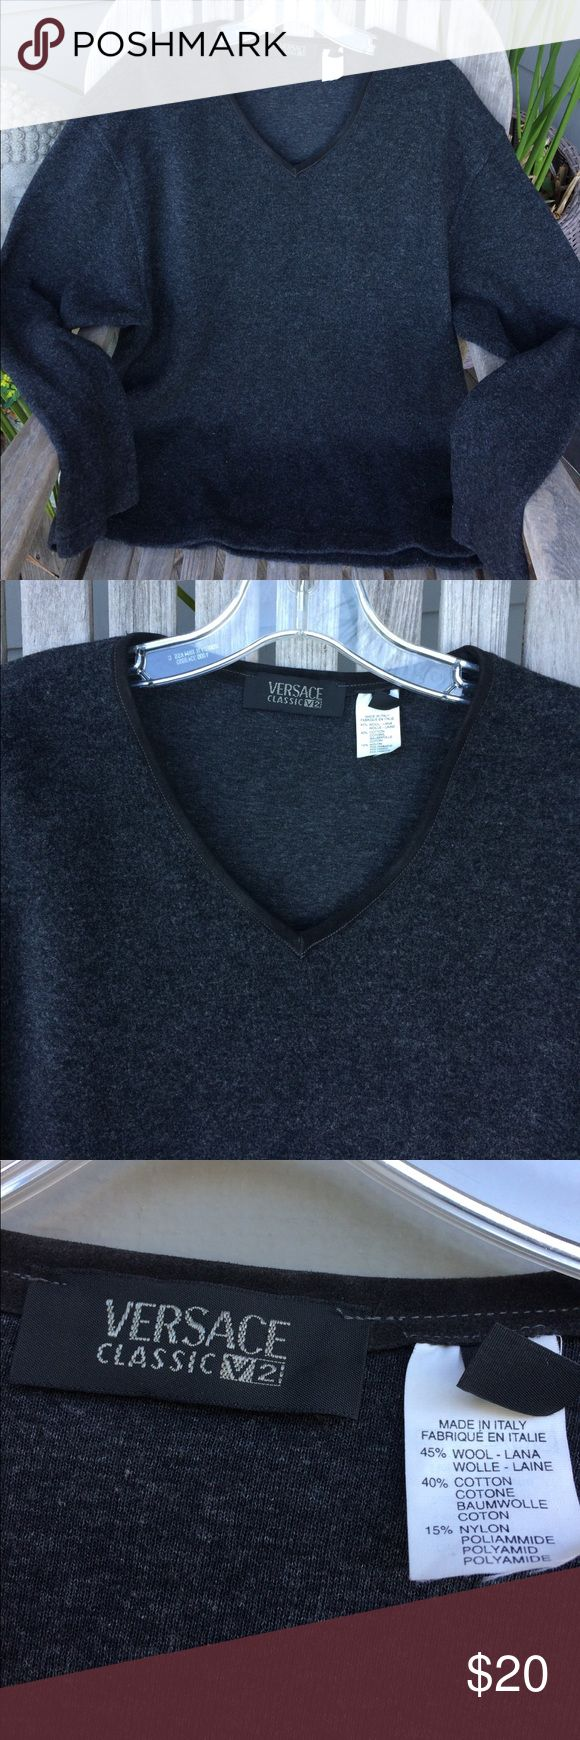 Versace pure wool men's v neck sweater Gorgeous soft 100 % wool Versace sweater. Nice suede piping at v neck.  Nice loose fit so you can layer with shirts underneath.  Casual and stylish. Excellent condition Versace Sweaters V-Neck